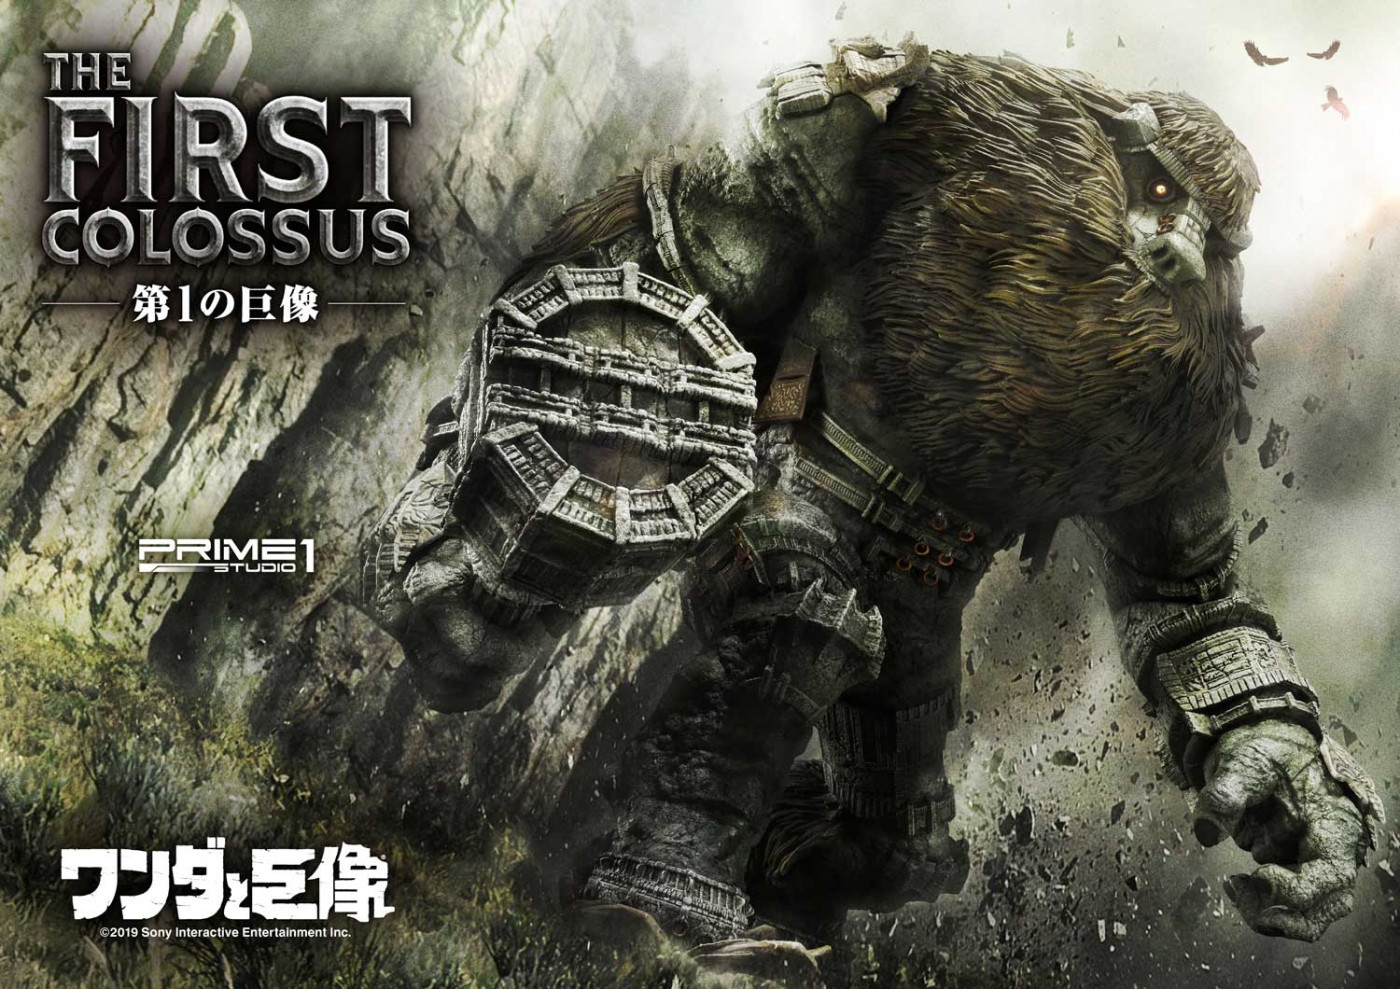 Ultimate Diorama Masterline Shadow of the Colossus The First Colossus